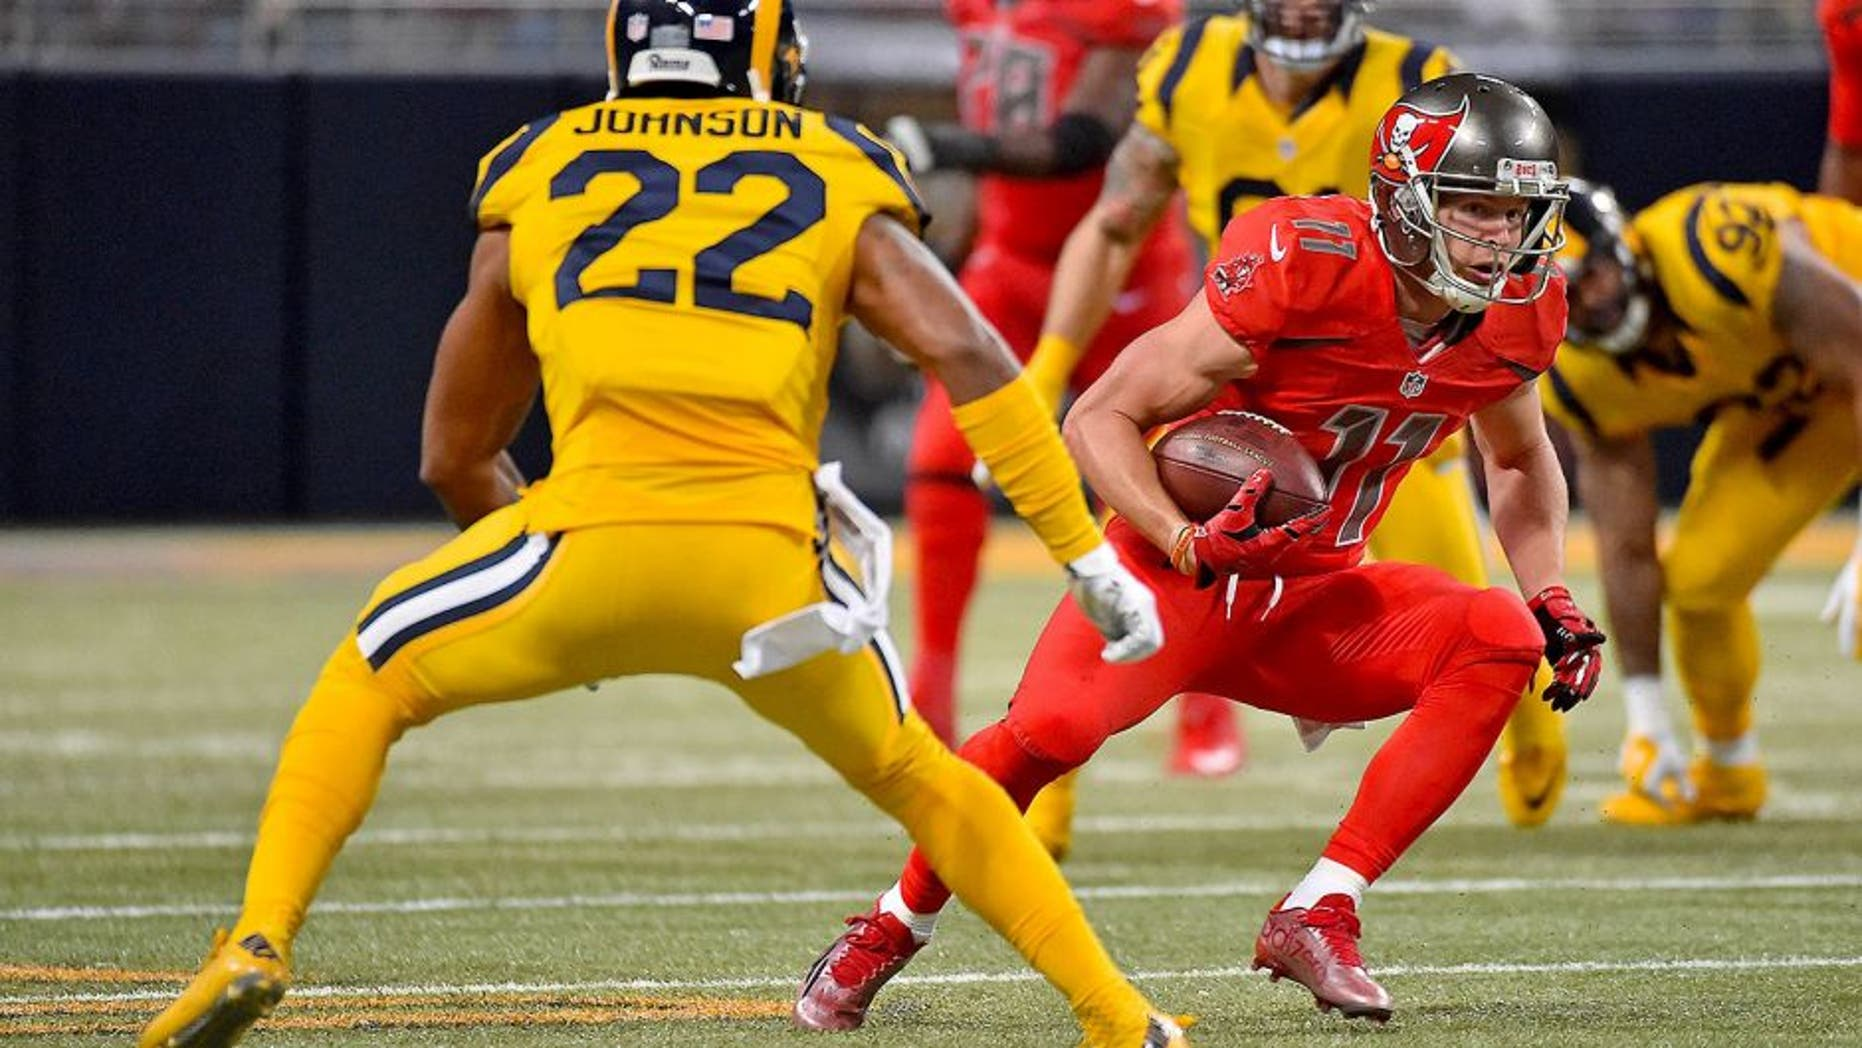 Dec 17, 2015; St. Louis, MO, USA; Tampa Bay Buccaneers wide receiver Adam Humphries (11) runs the ball against St. Louis Rams cornerback Trumaine Johnson (22) during the second half at the Edward Jones Dome. Mandatory Credit: Jasen Vinlove-USA TODAY Sports